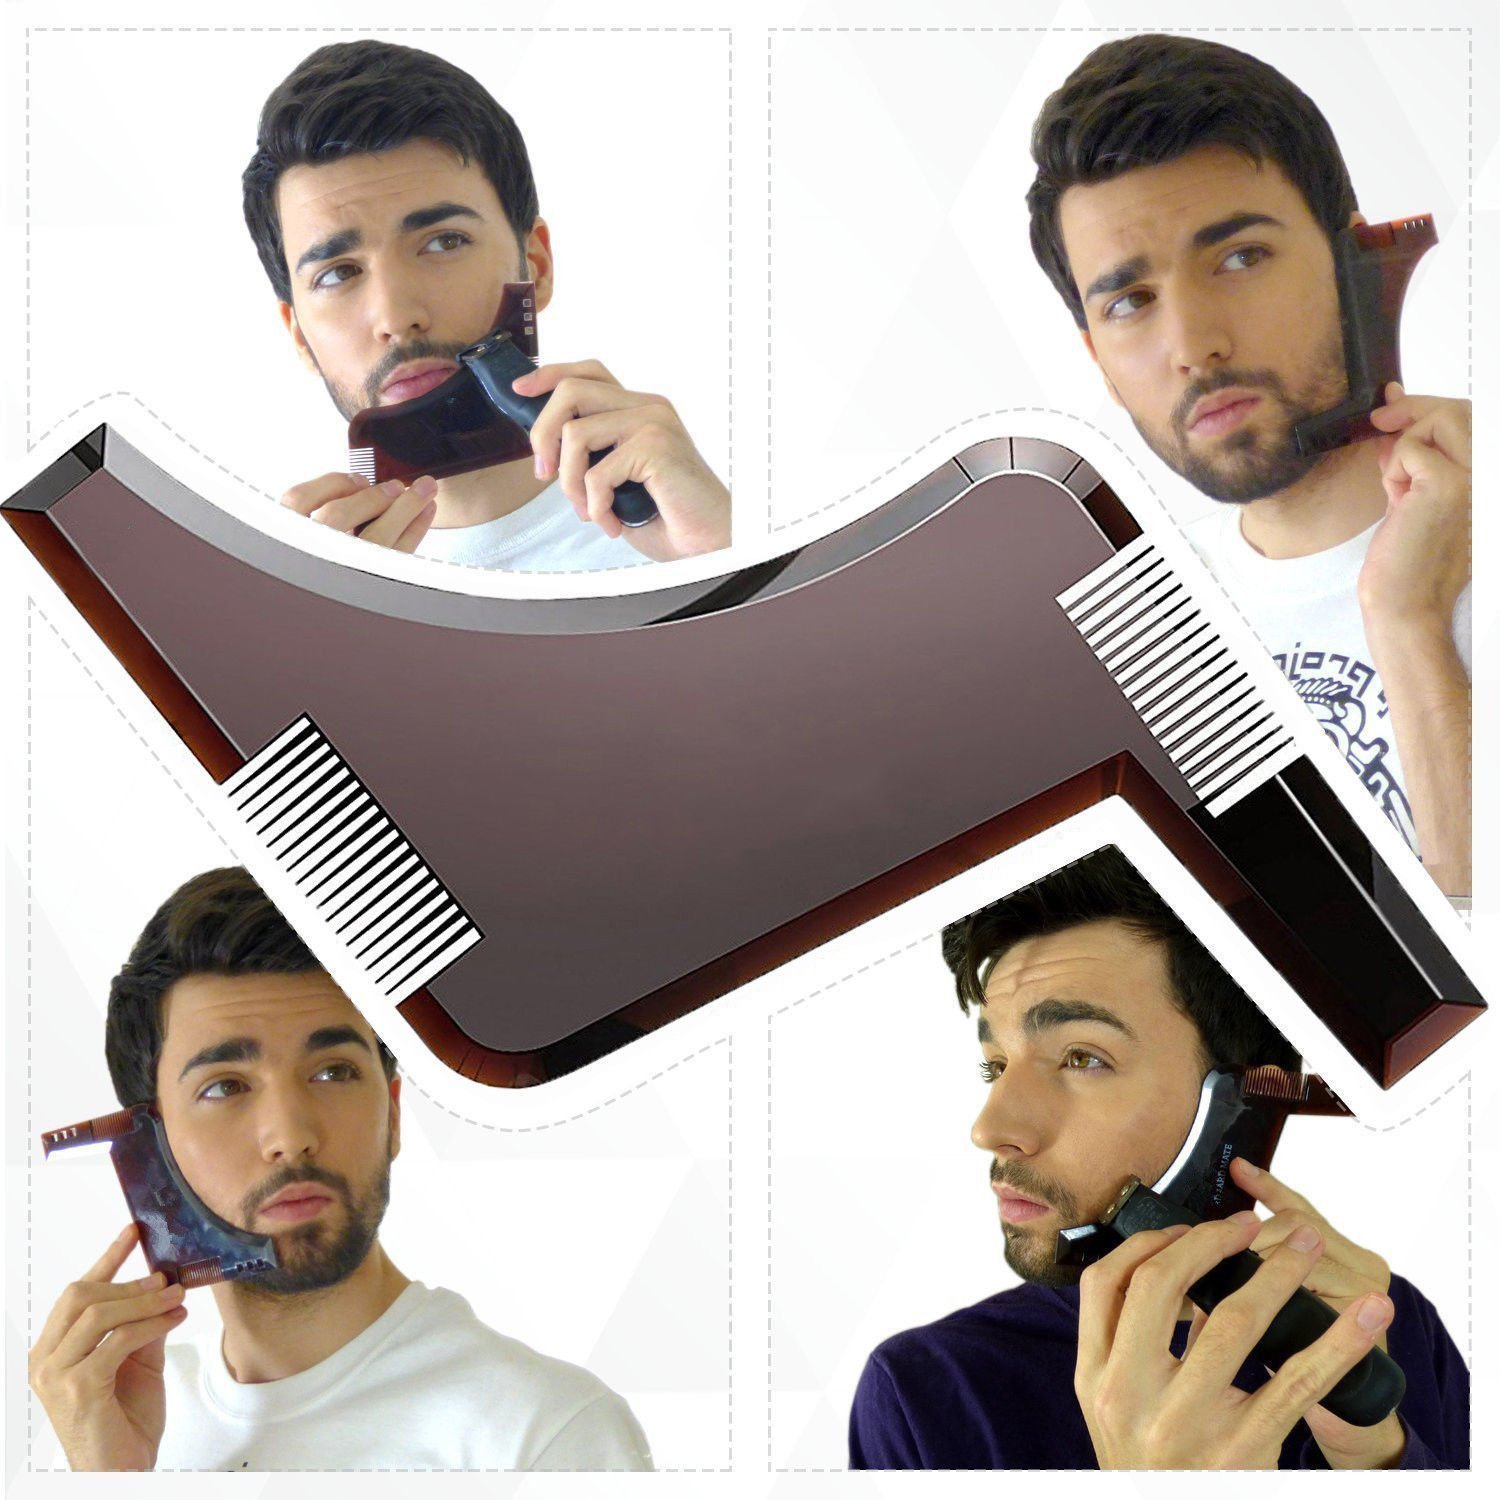 Beard Shaping Tool Template, Finlon Beard Comb, Beard Styling and Shaping Template Comb Tool Trimming Facial Hair Beard Shaving Template Beard Styling Tool Shaving Aid